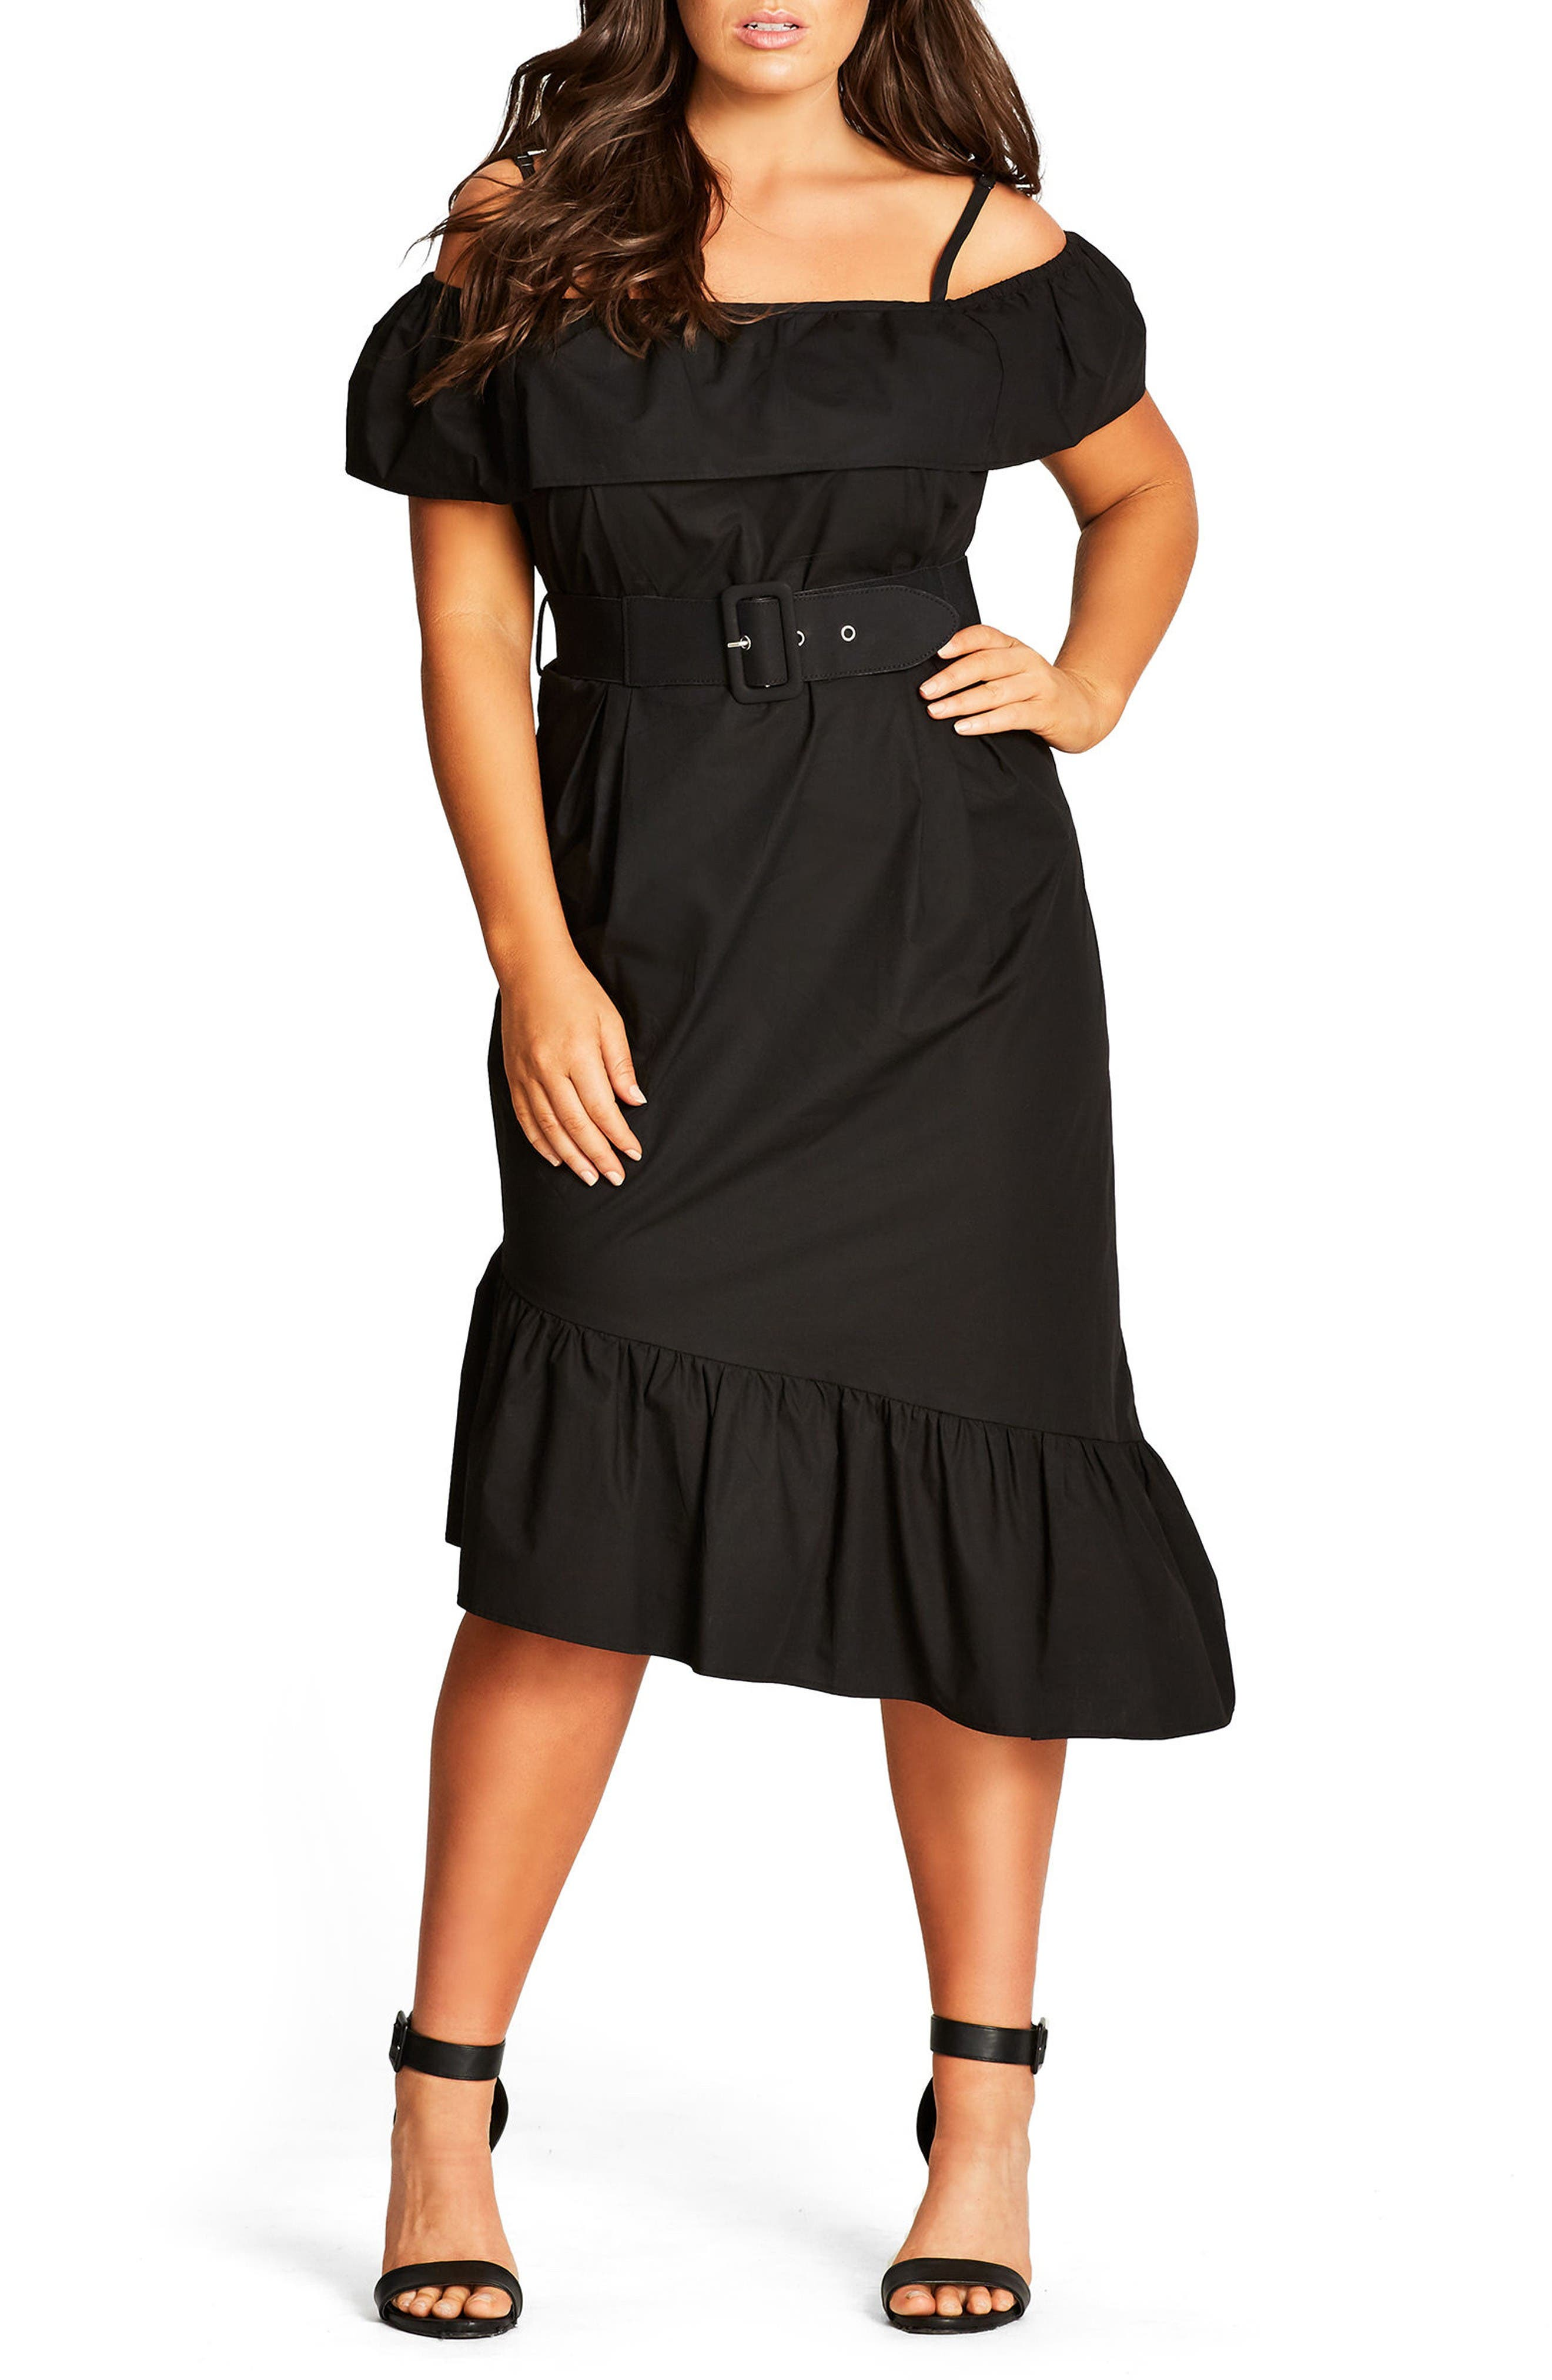 City Chic Saloon Baby Cold Shoulder Dress (Plus Size)